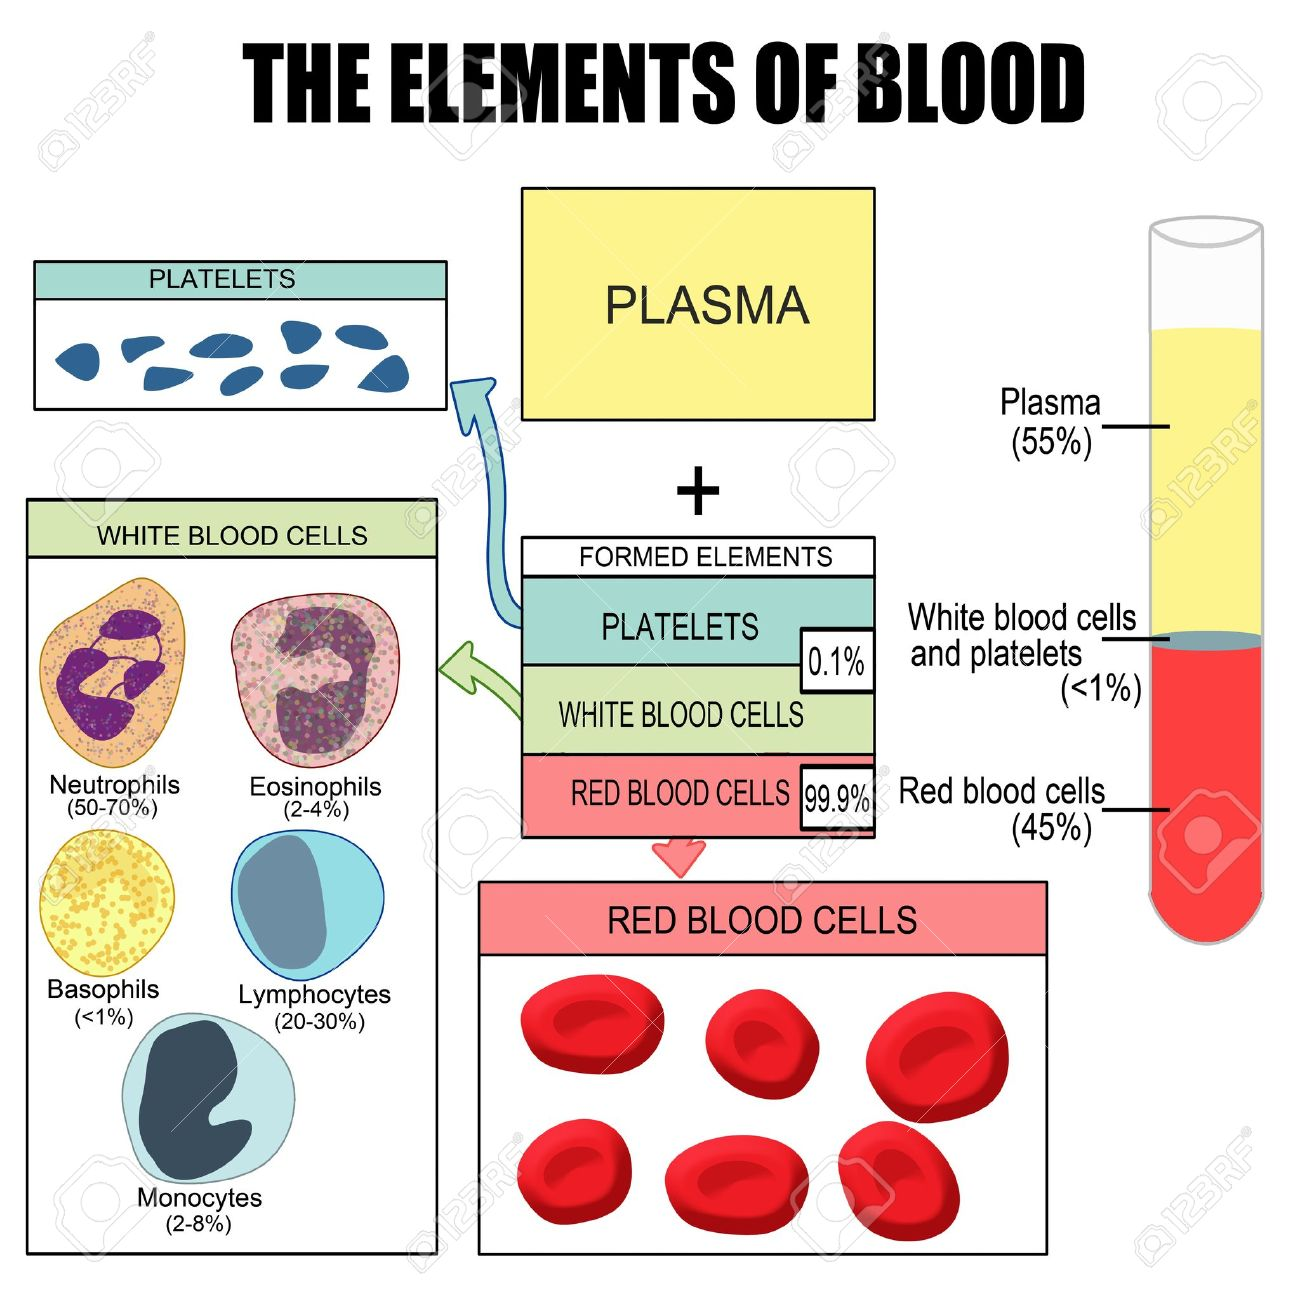 elements of blood diagram elements database wiring diagram elements of blood diagram elements database wiring diagram images